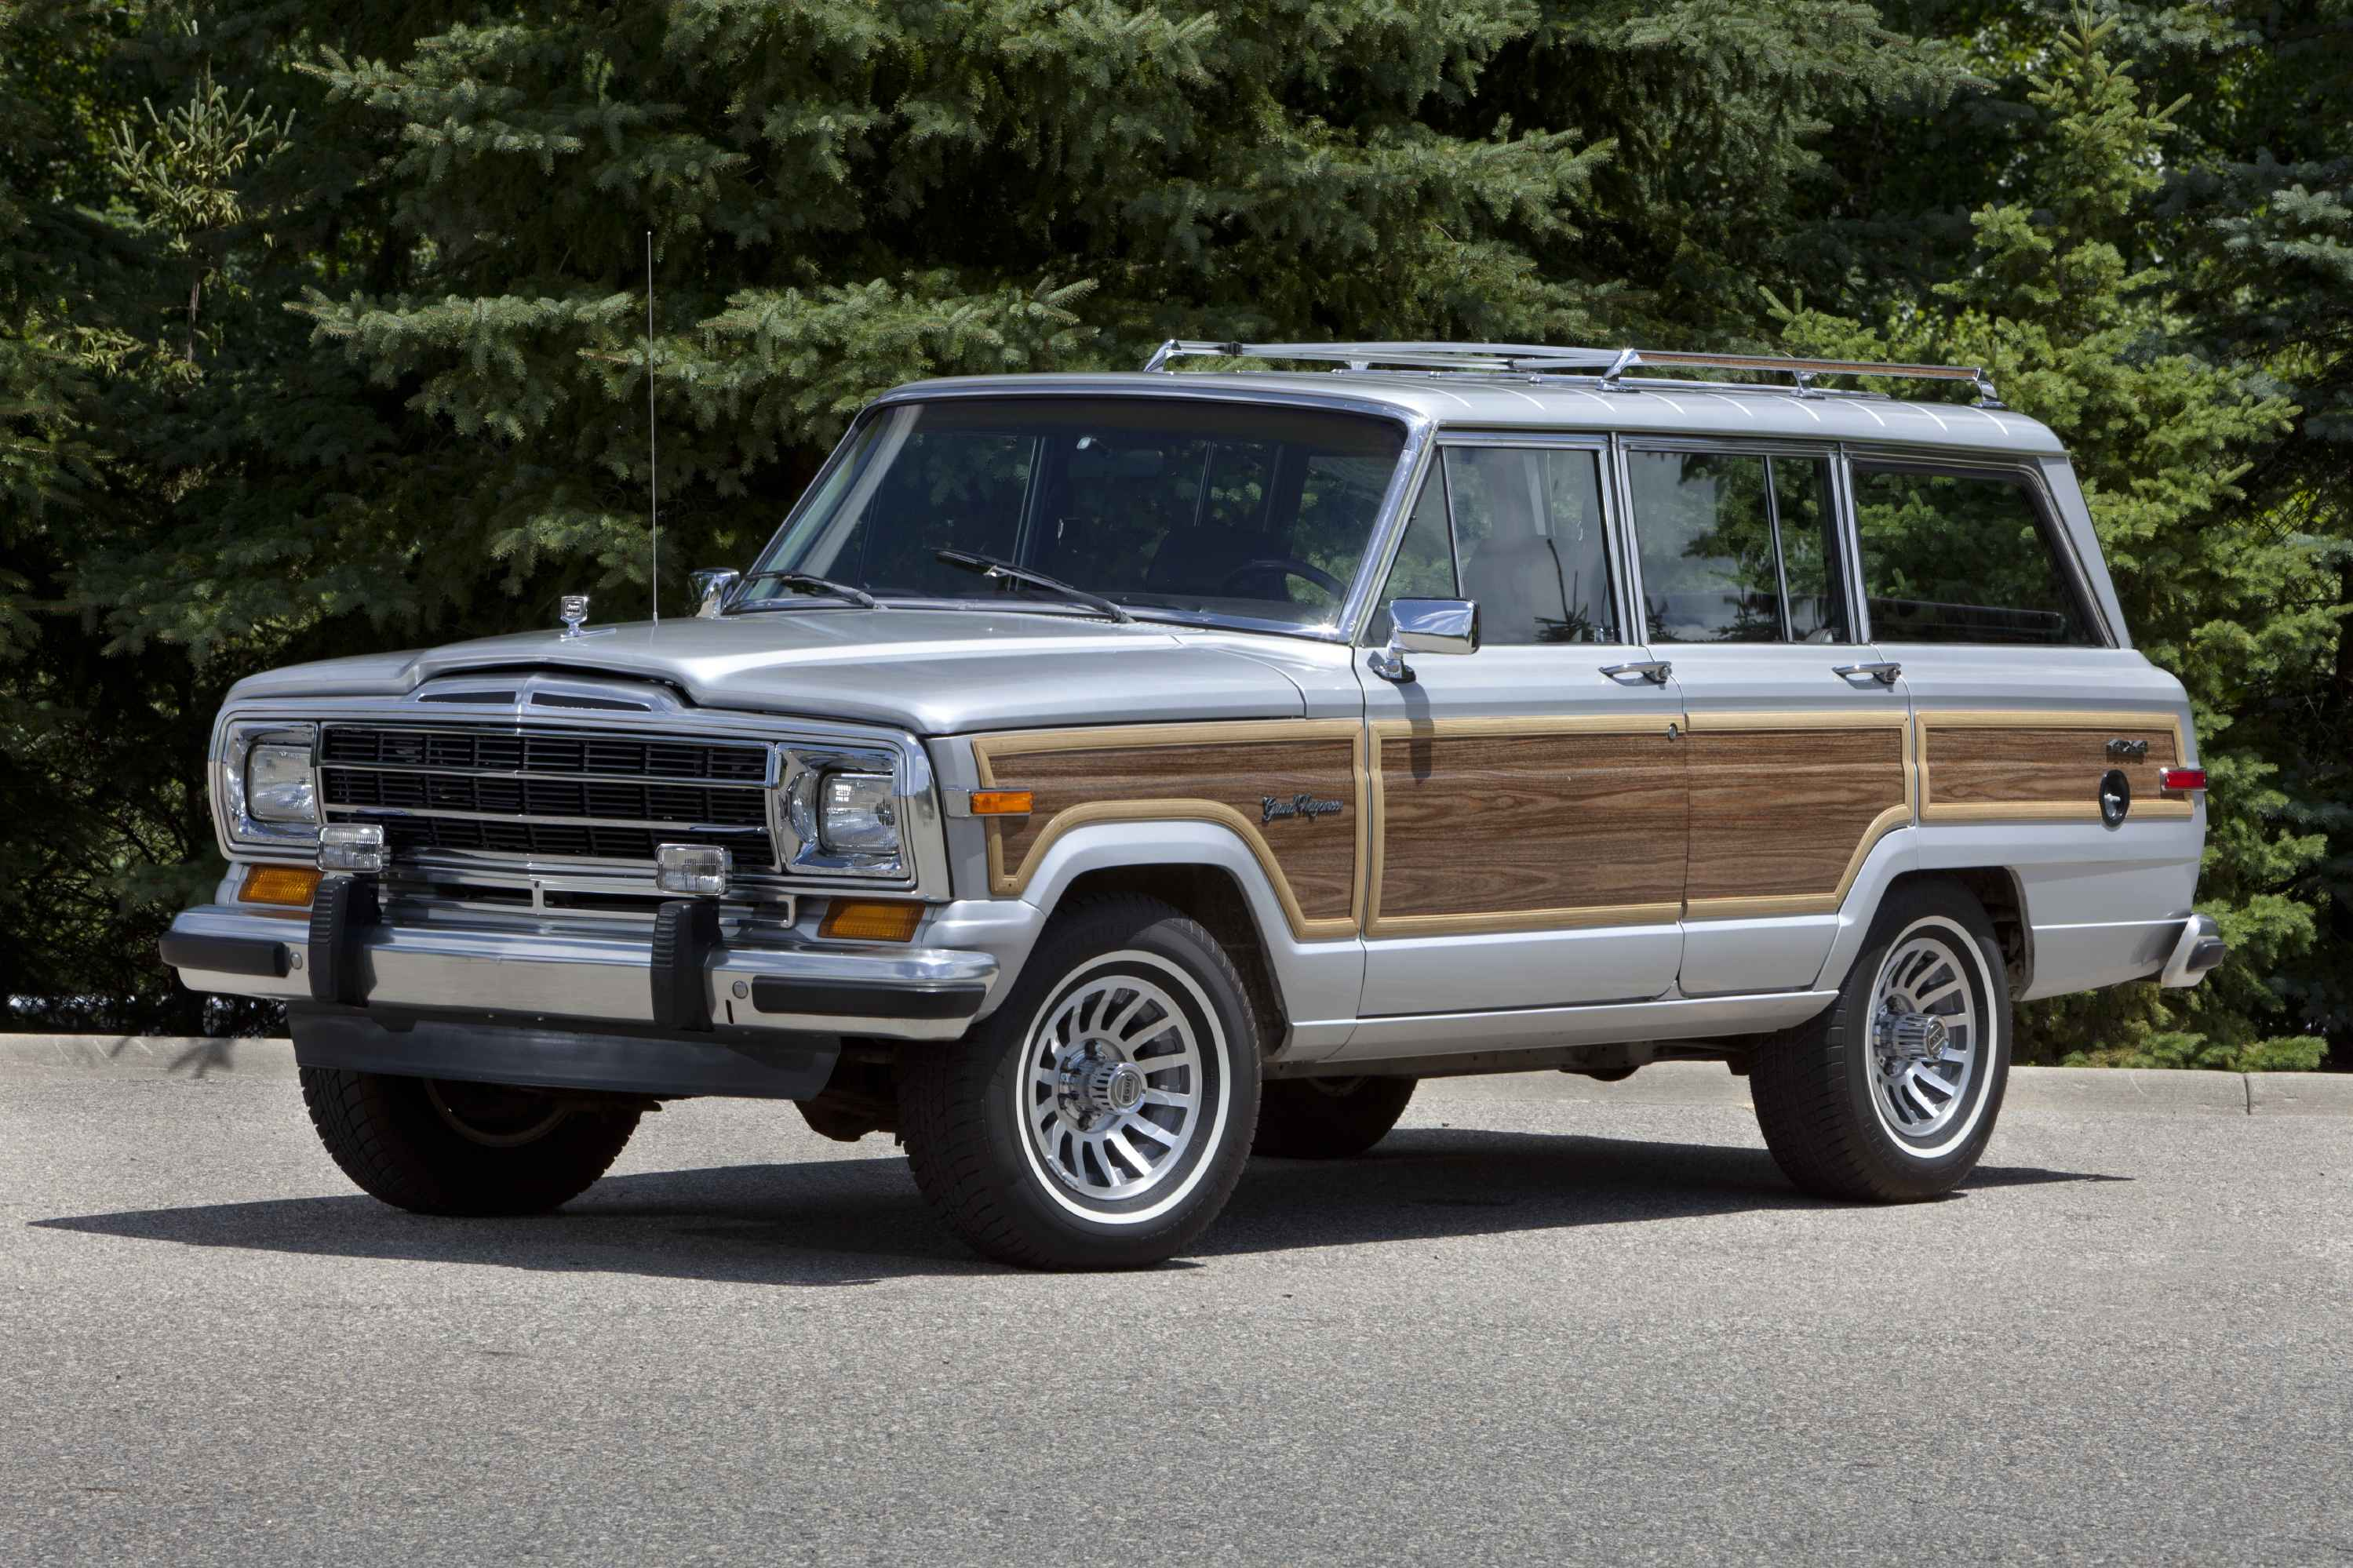 Jeep Wagoneer photo 15